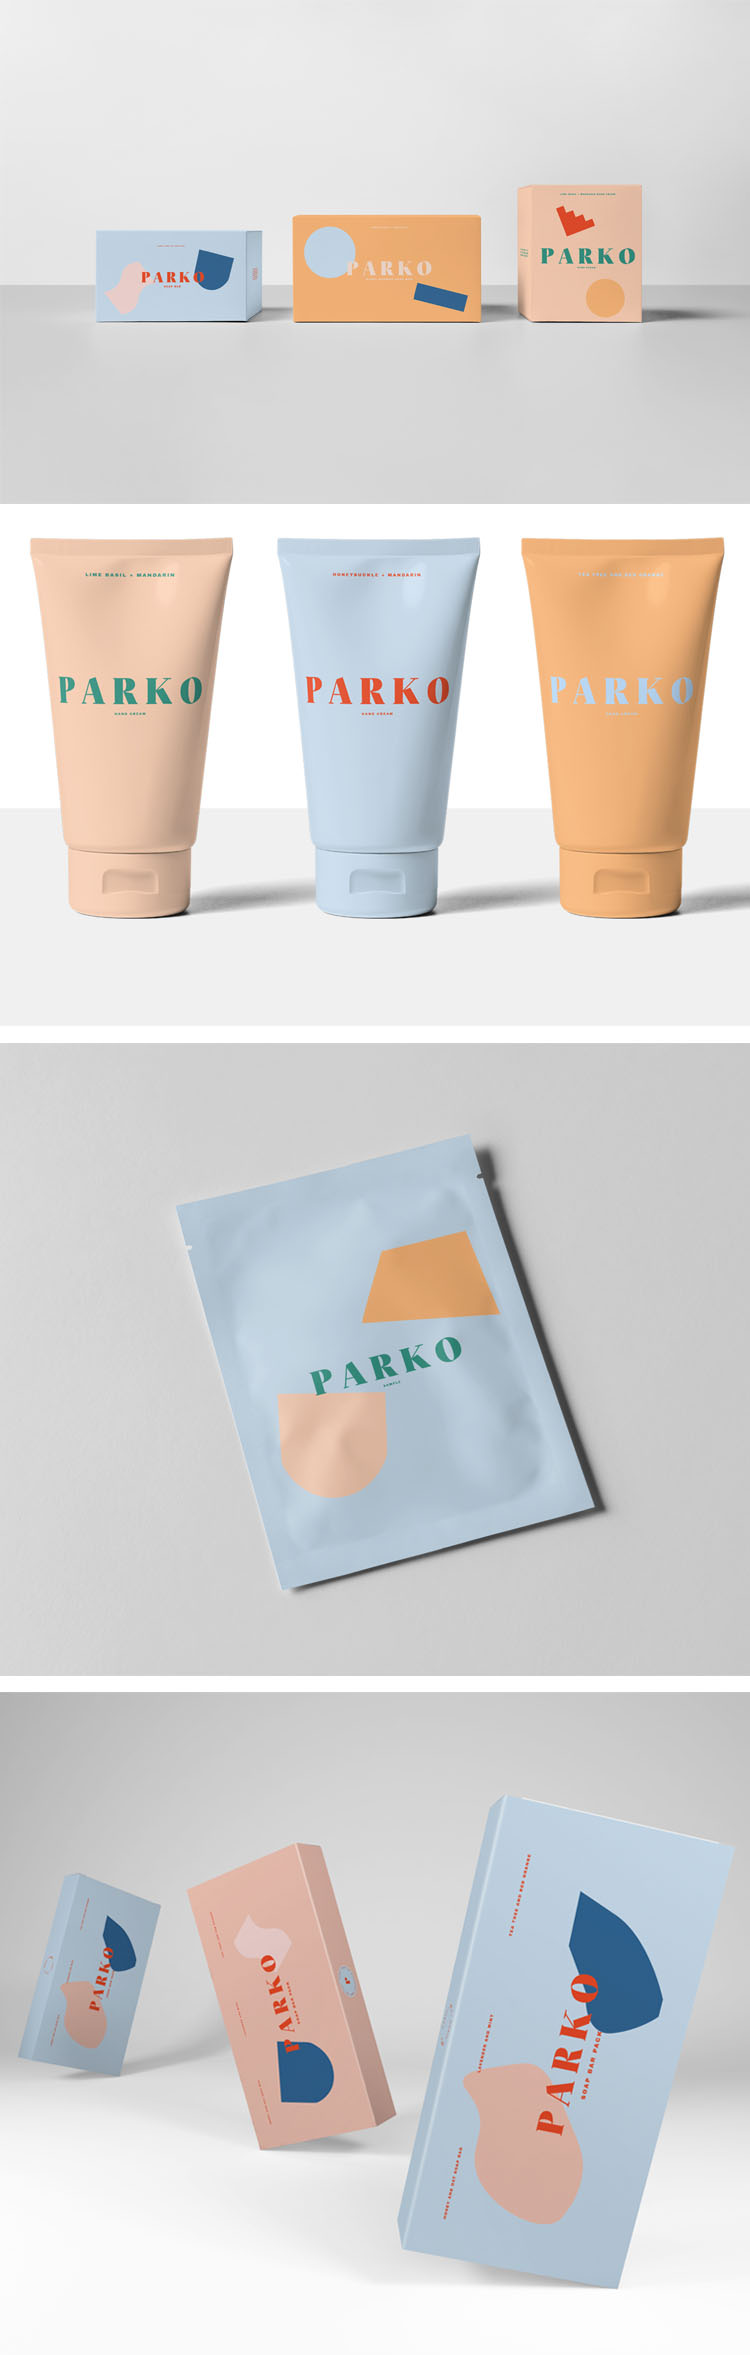 parko skincare @forpackad.jpg